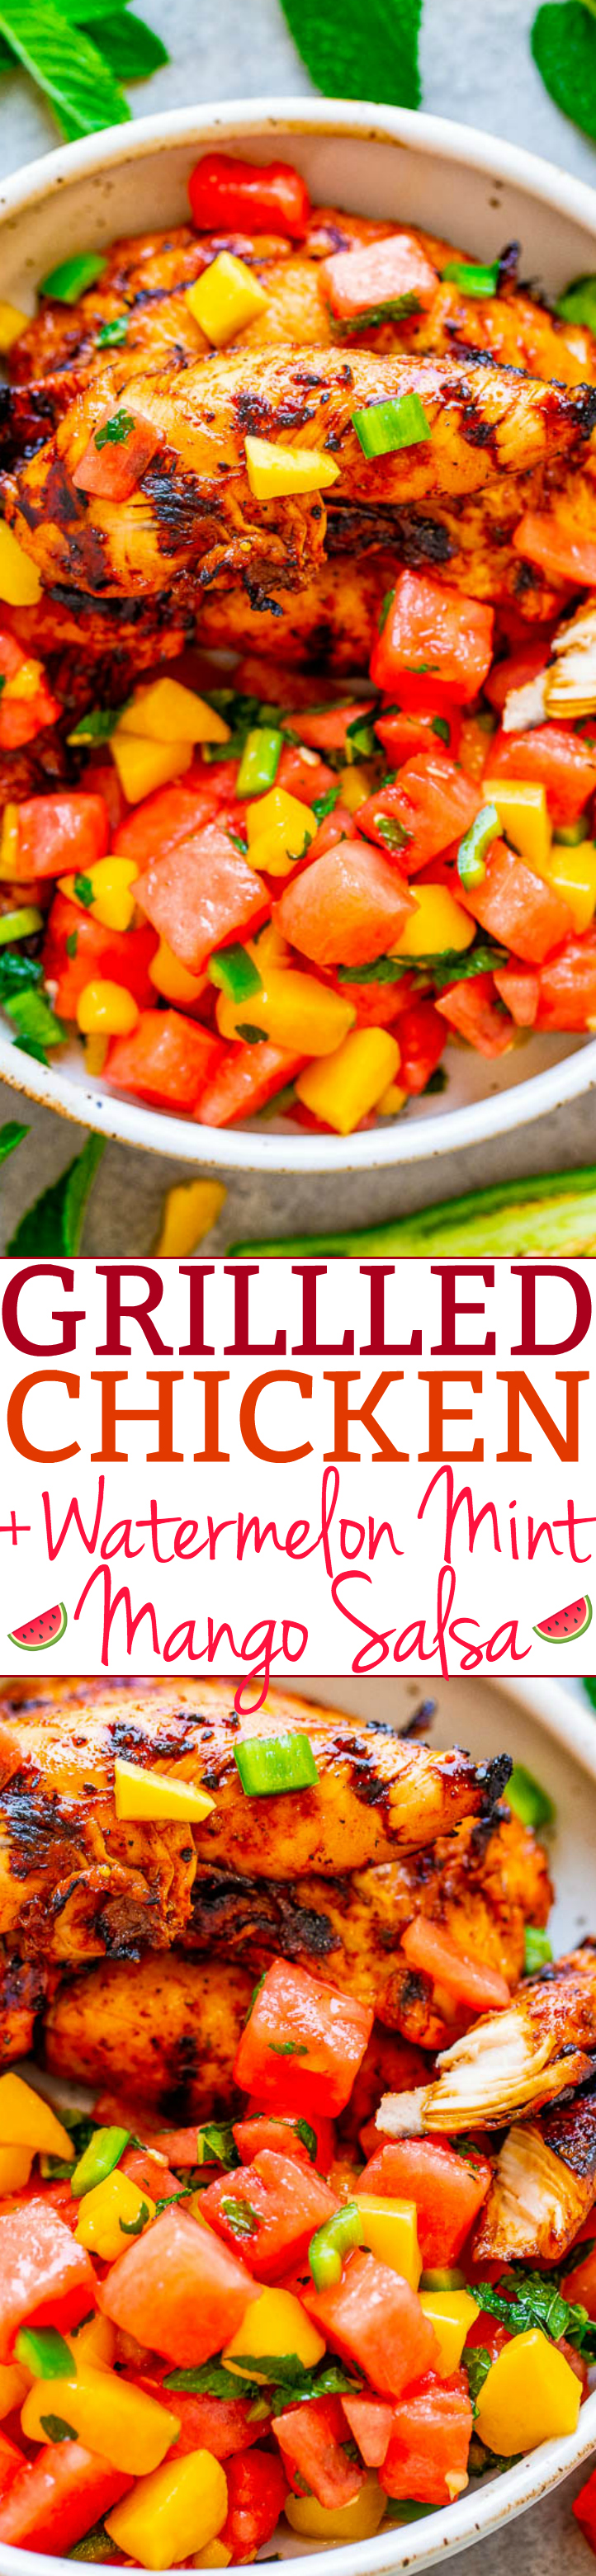 Grilled Chicken With Watermelon Mango Mint Salsa - Chicken is tender & the easy salsa made with watermelon, mango, and mint is so delish!!